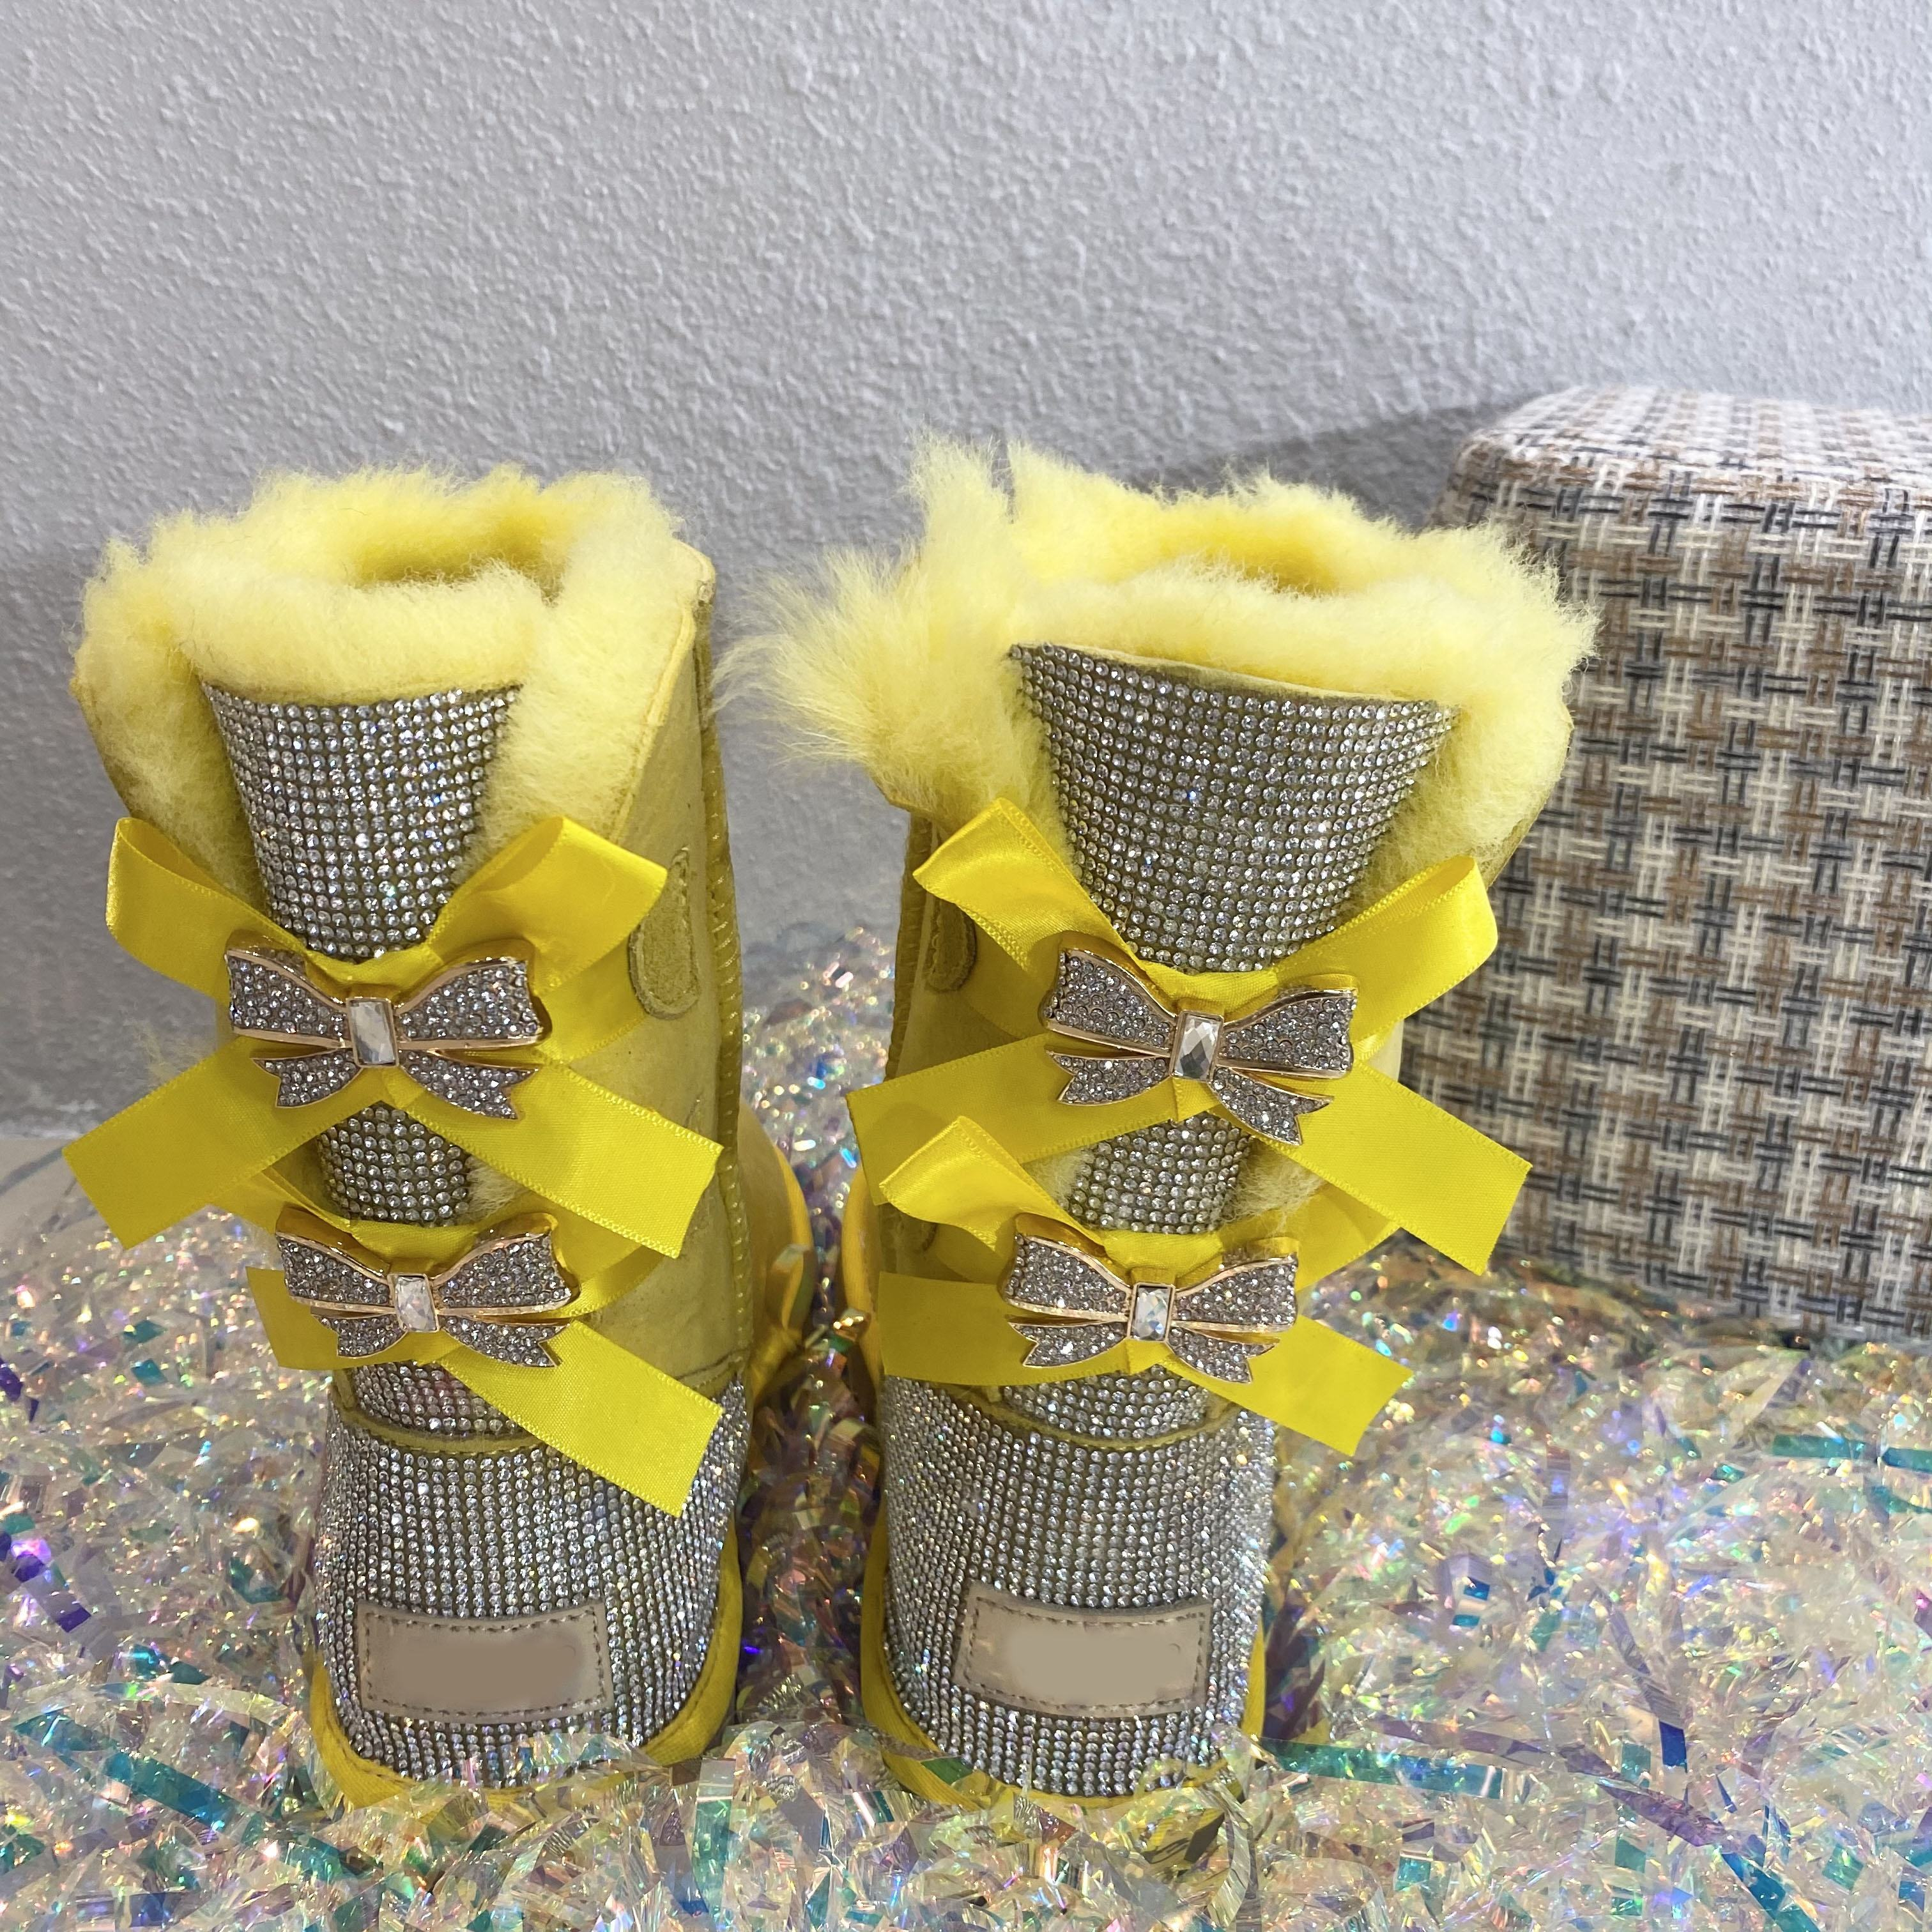 2020 Outdoor Winter WarmブーツウォメRhinestone Sheepskin Shoes Sheep Fur Lined Snow Glitter Boots